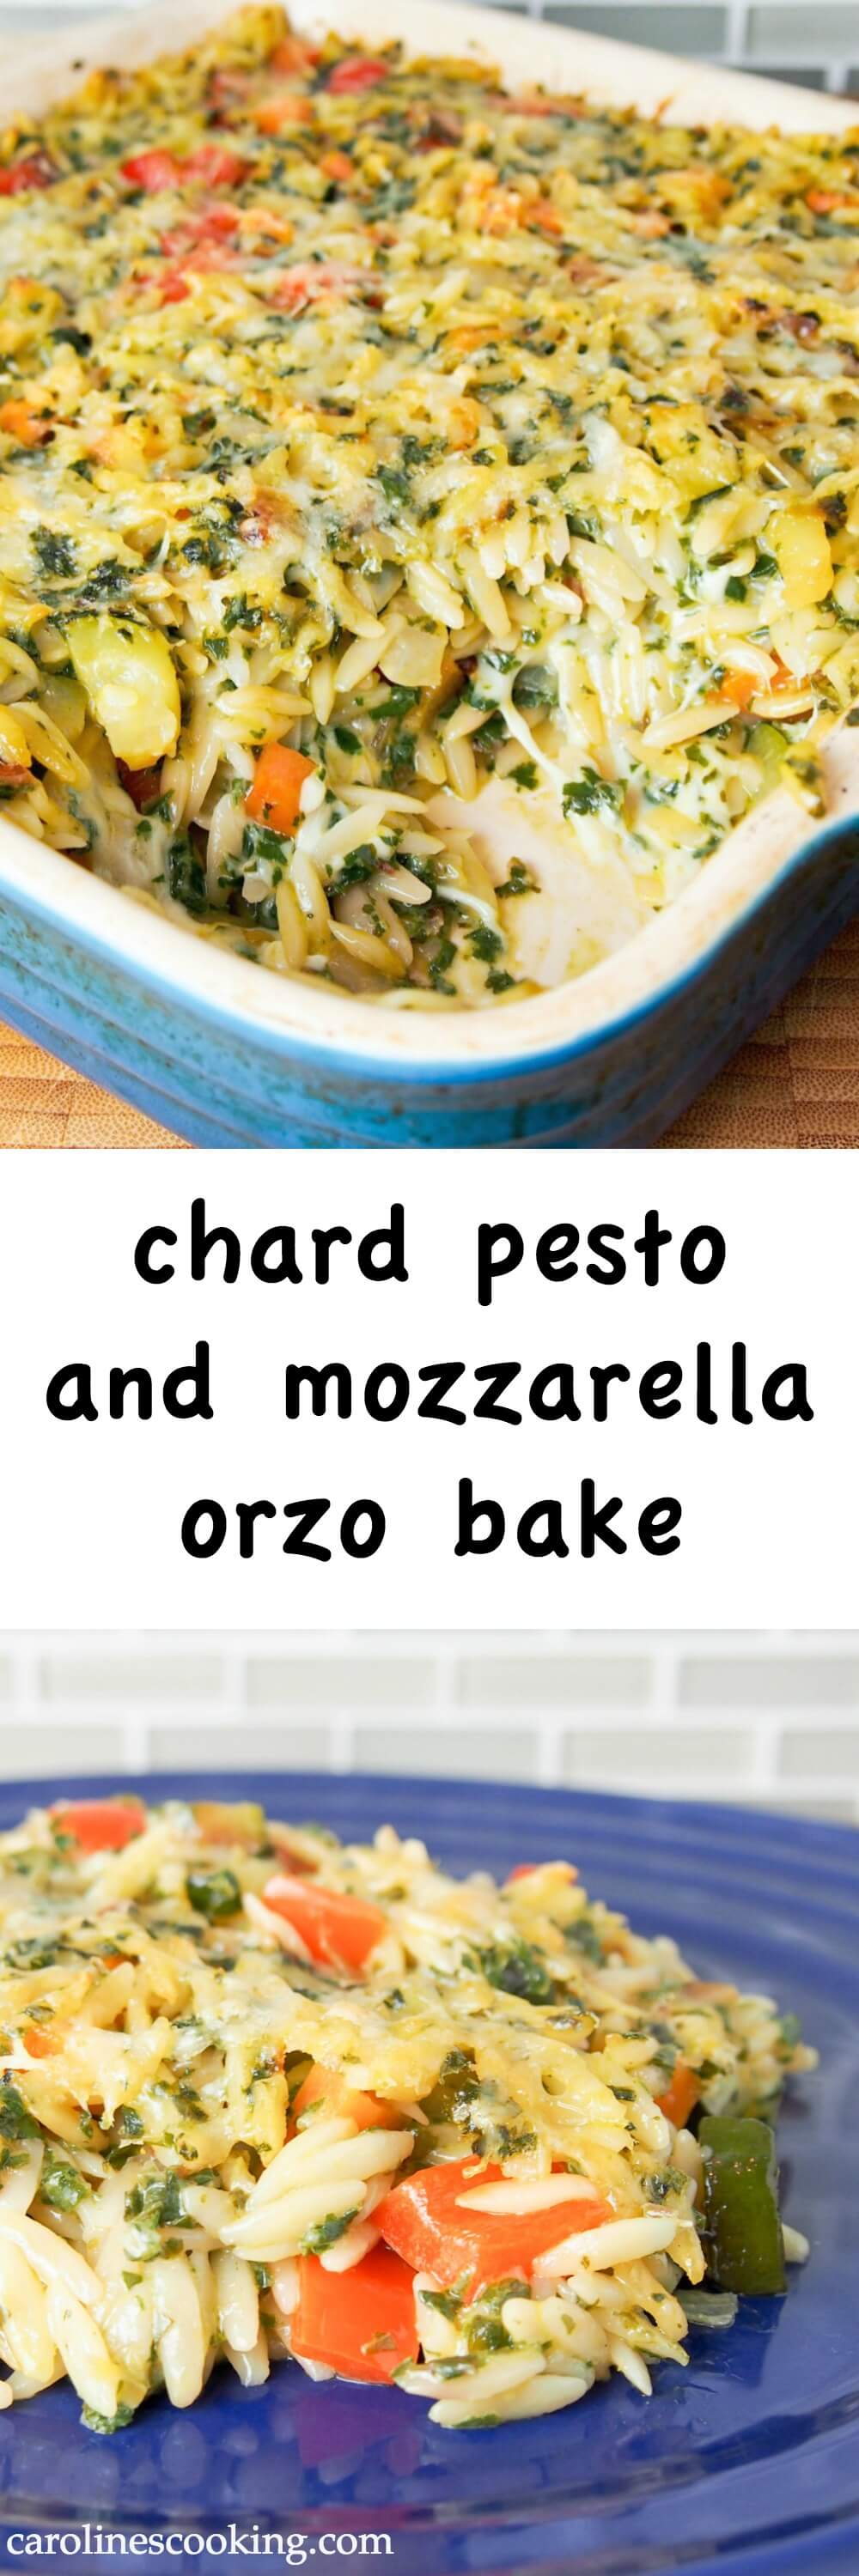 This tasty chard pesto and mozzarella orzo bake has all the comfort factor you would want in colder weather with that bit of spring freshness. It has plenty of gooey cheese, but lots of healthy veg as well. Perfect for any occasion. #chard #pasta #pastabake #vegetarian